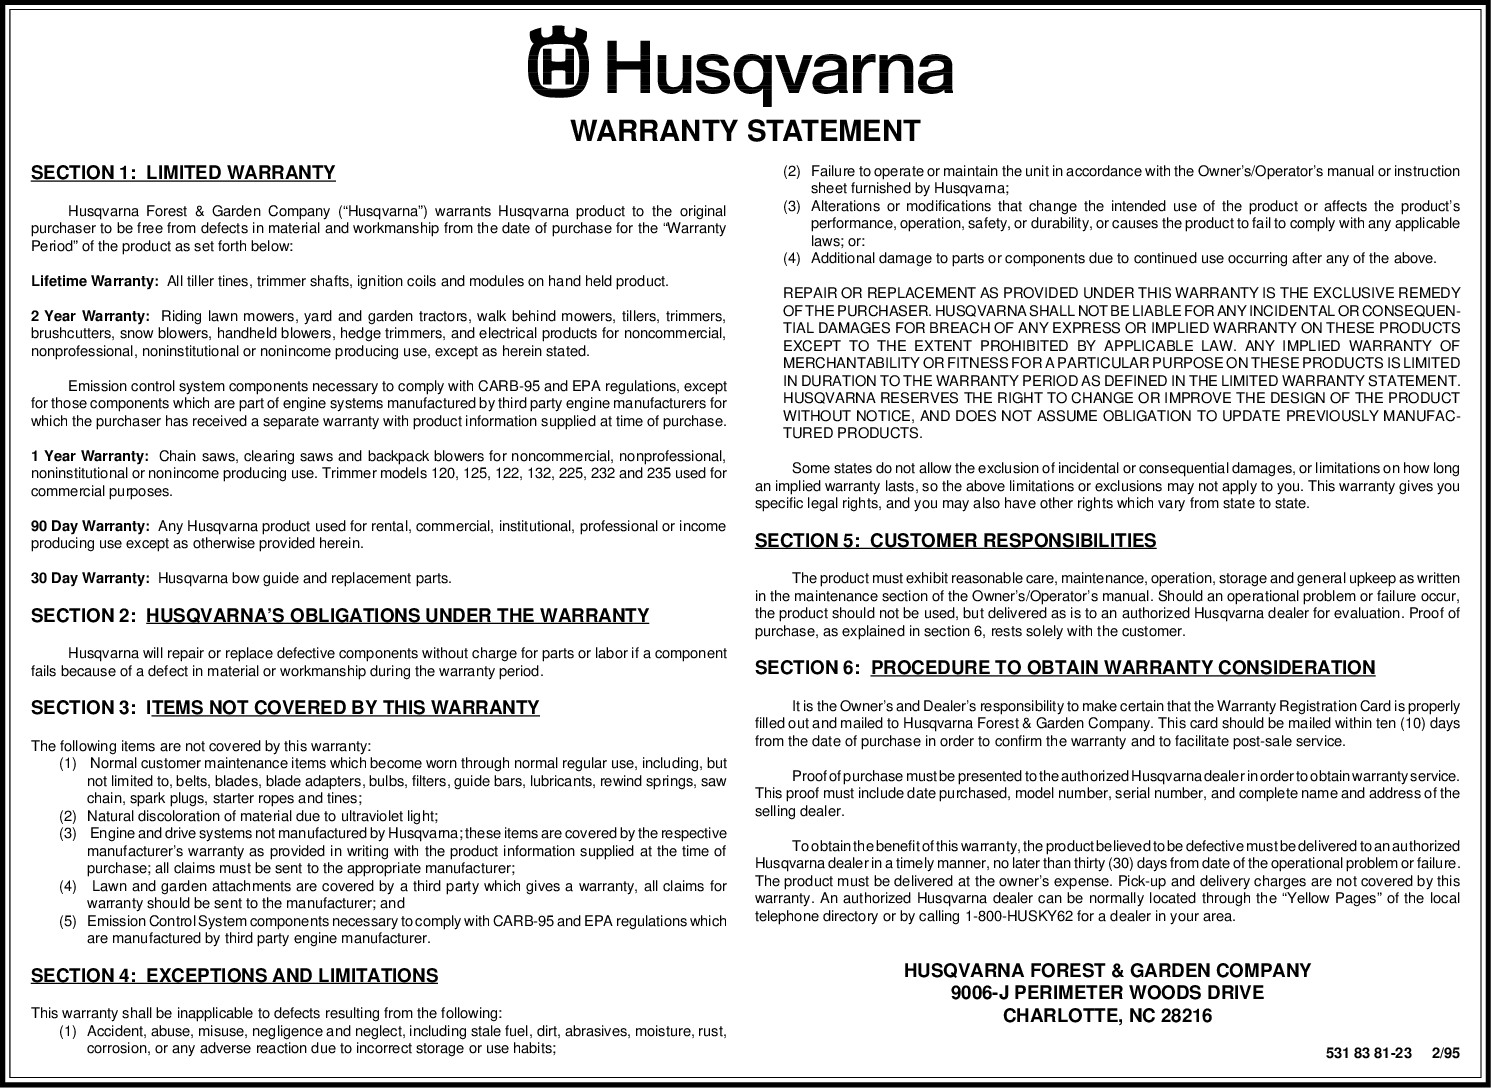 Husqvarna Lth130 Users Manual OM, LTH 130, 954140005E, 1997 10, Ride